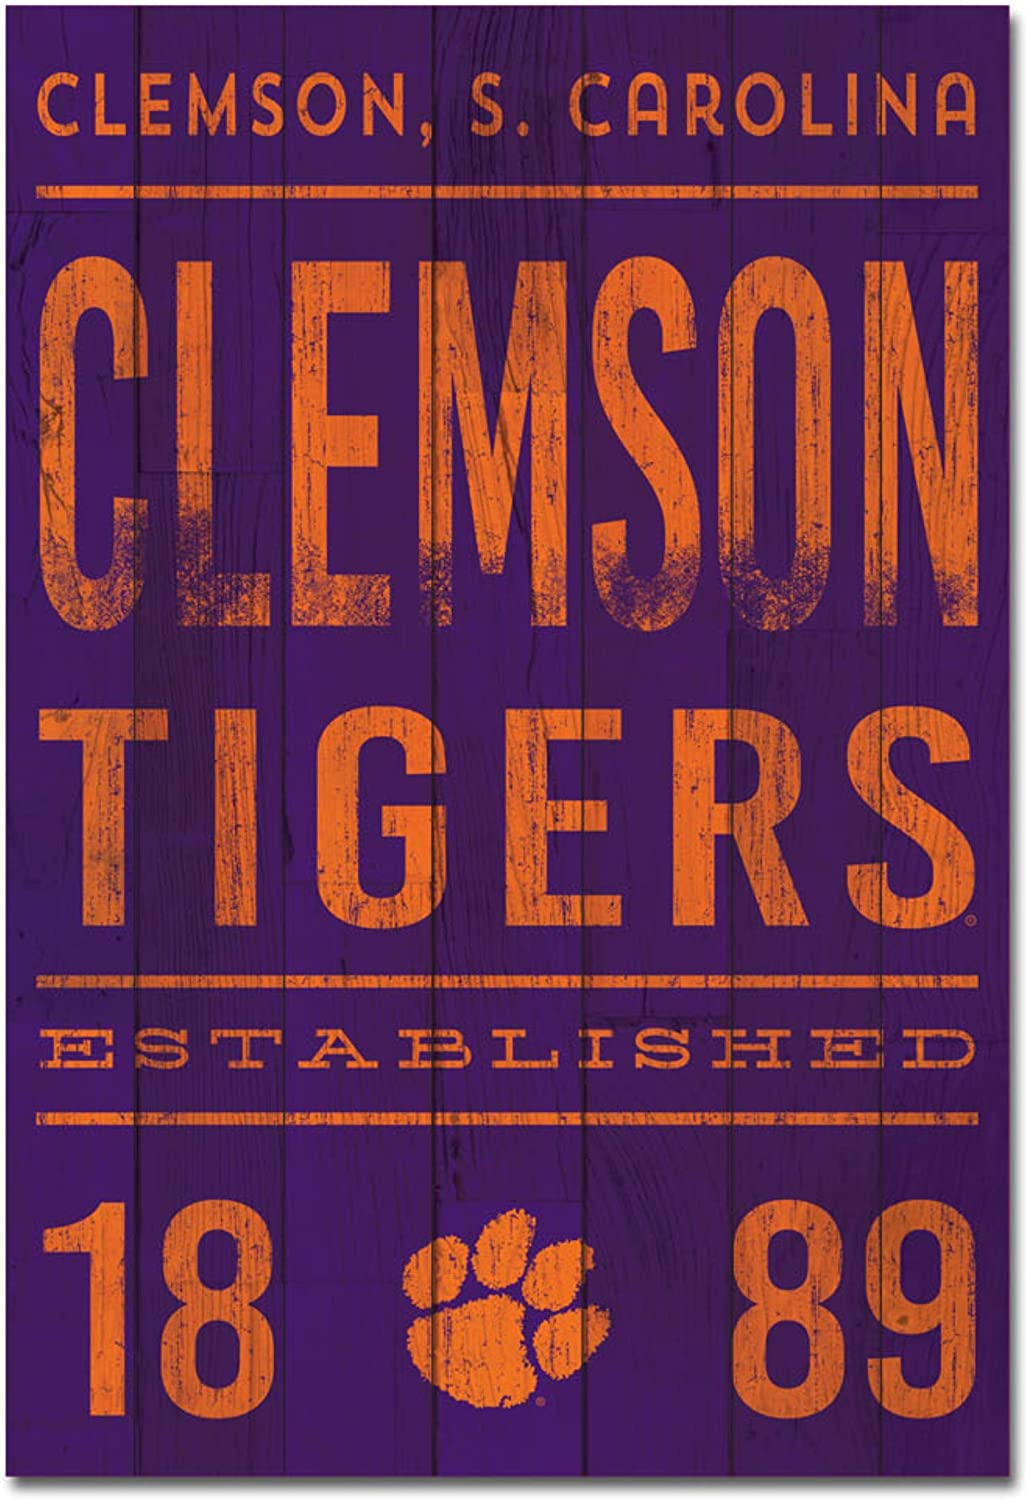 One Size Wood NCAA Legacy Clemson Tigers Showcase Wood Plank Sign 25x36